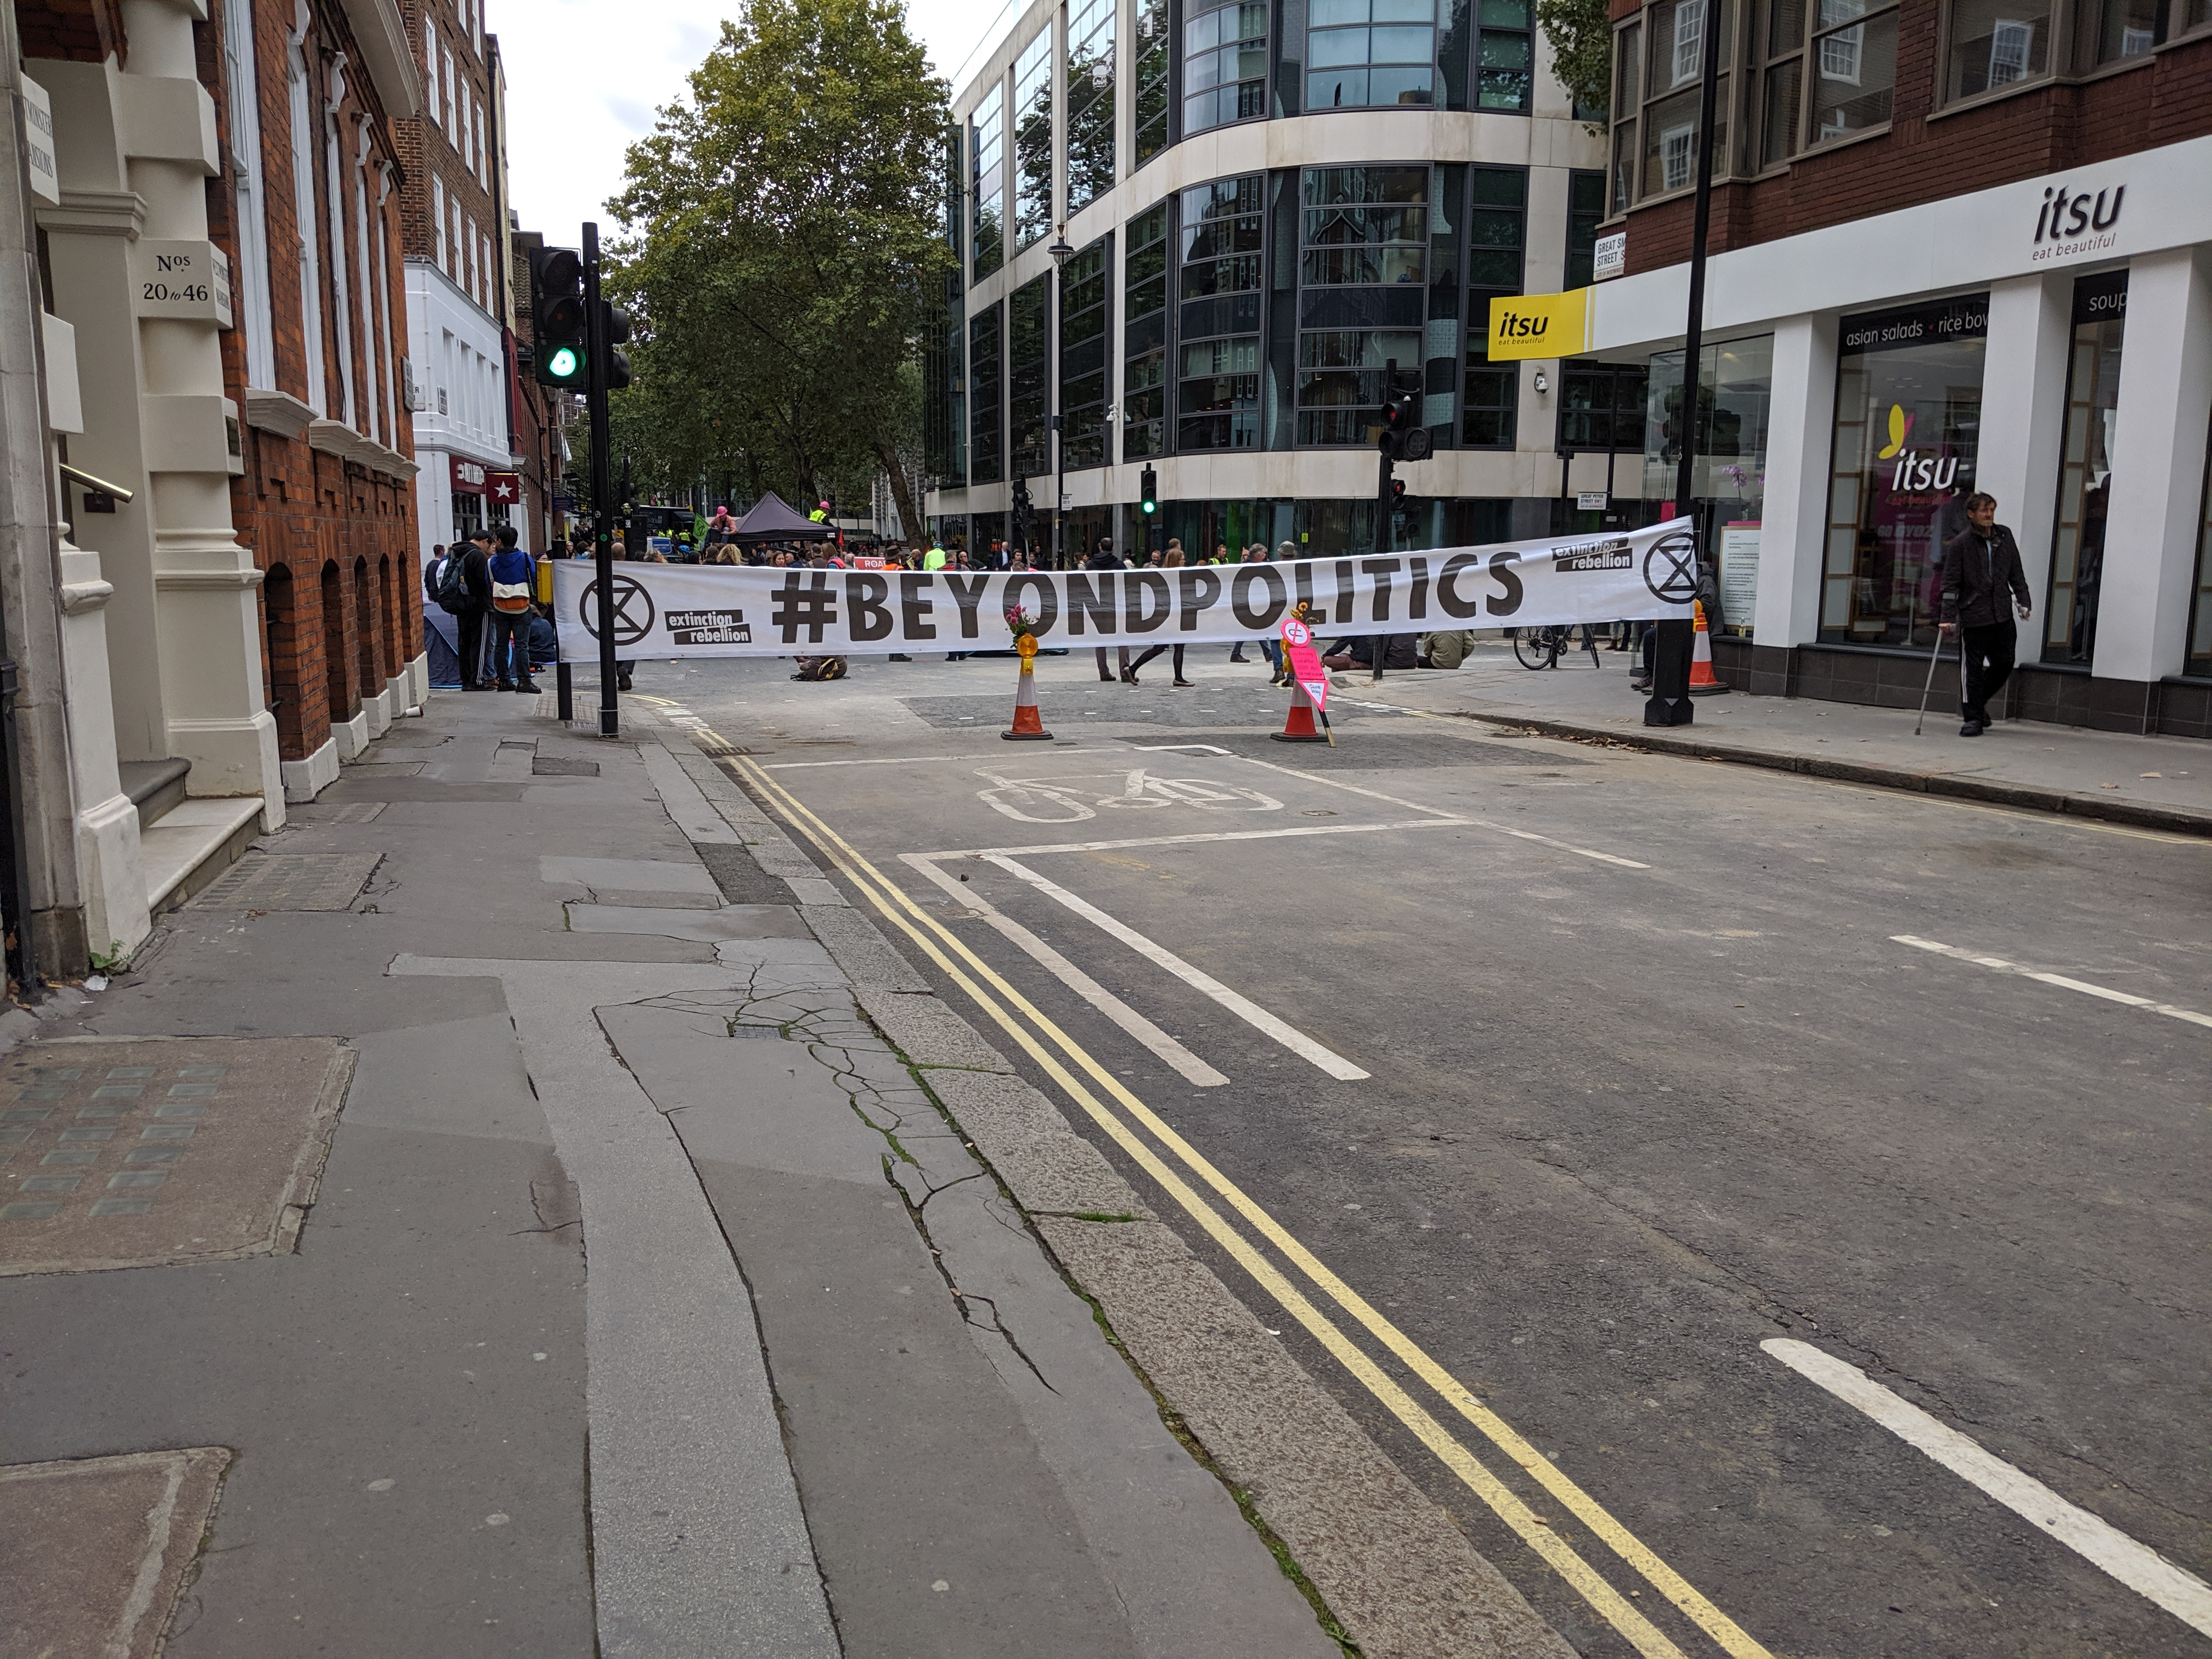 Extinction Rebellion protest on Marsham Street, as seen from Smith Street. The Home Office building is on the left. Taken around 13:30 on Monday 7th October 2019. (Photo: James Kemp)